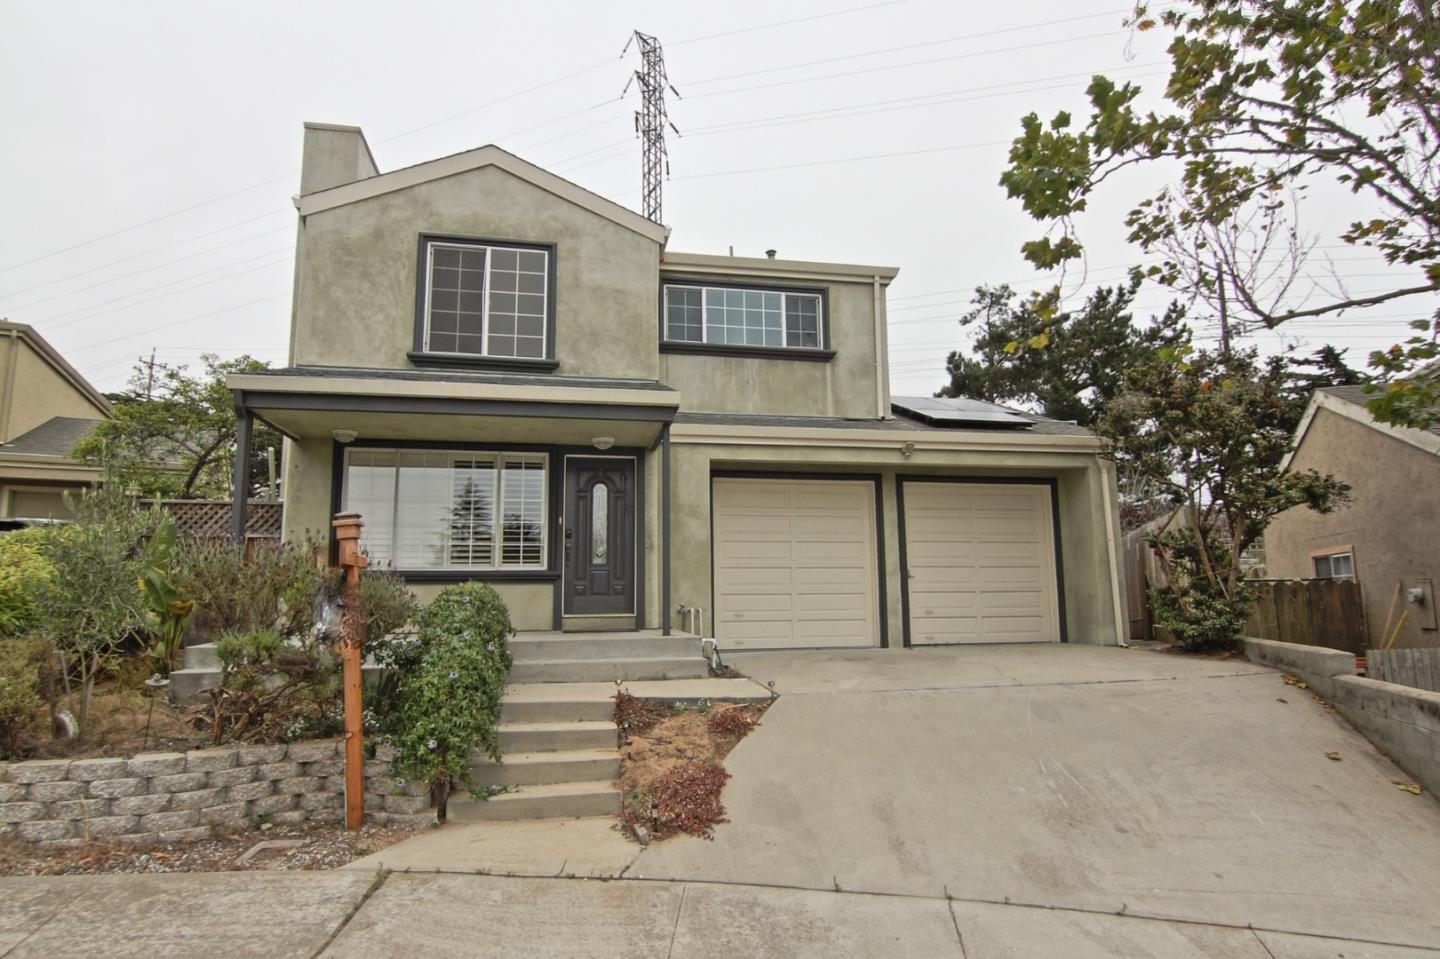 Photo of 11 Sandpiper CT, SEASIDE, CA 93955